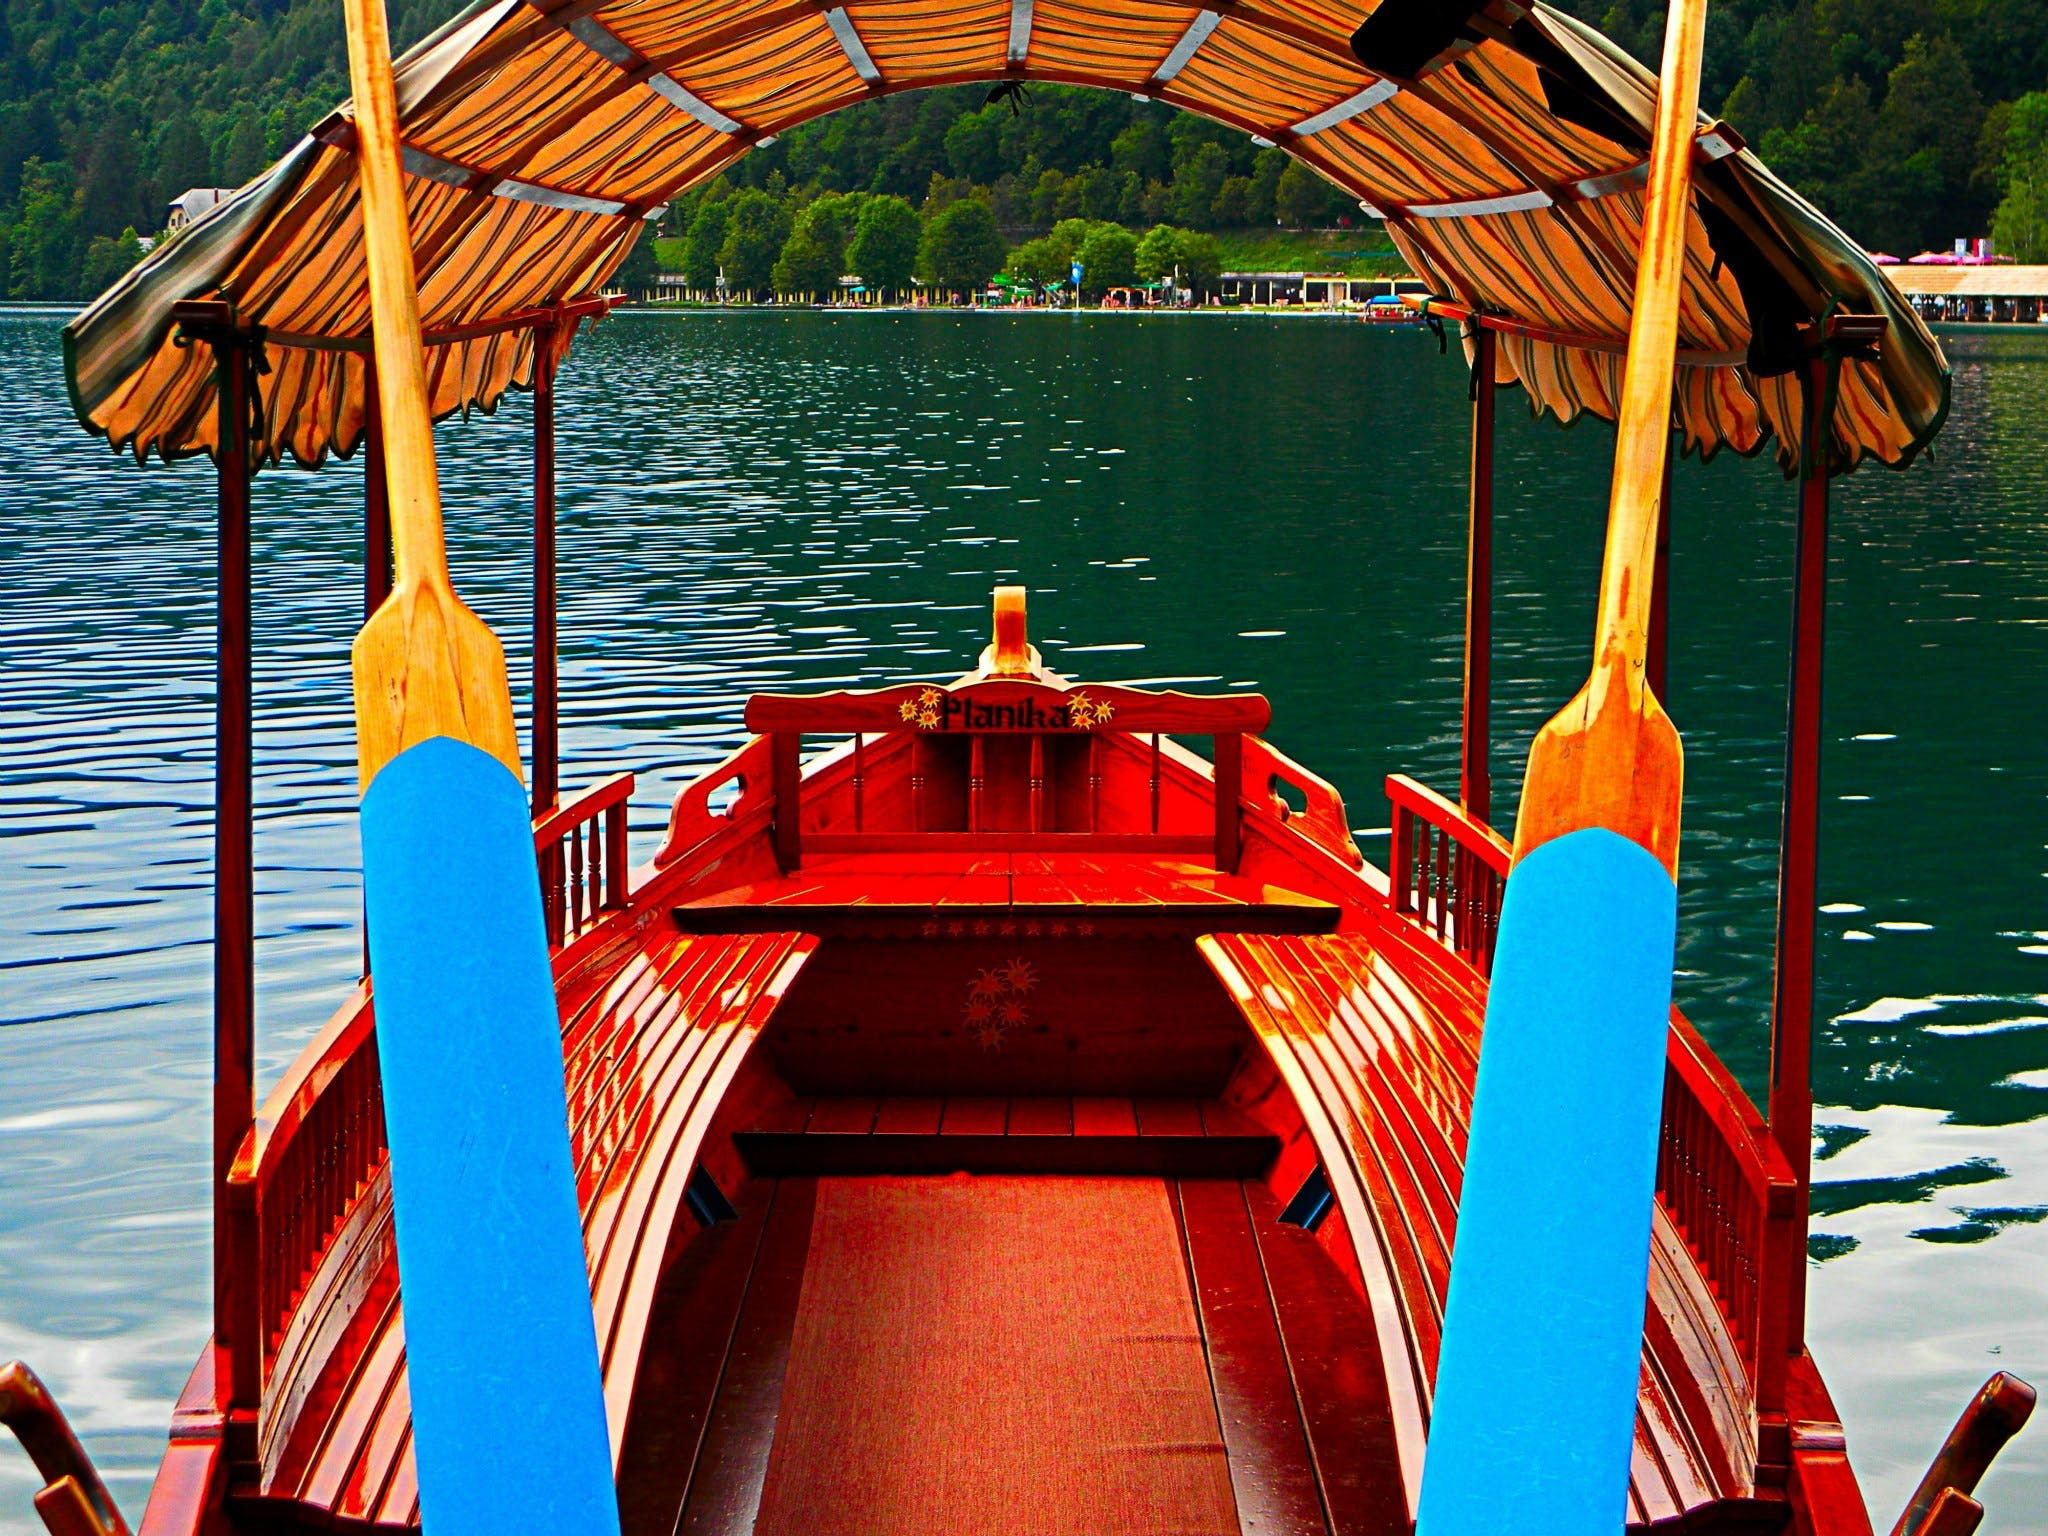 Red Boat on Body of Water